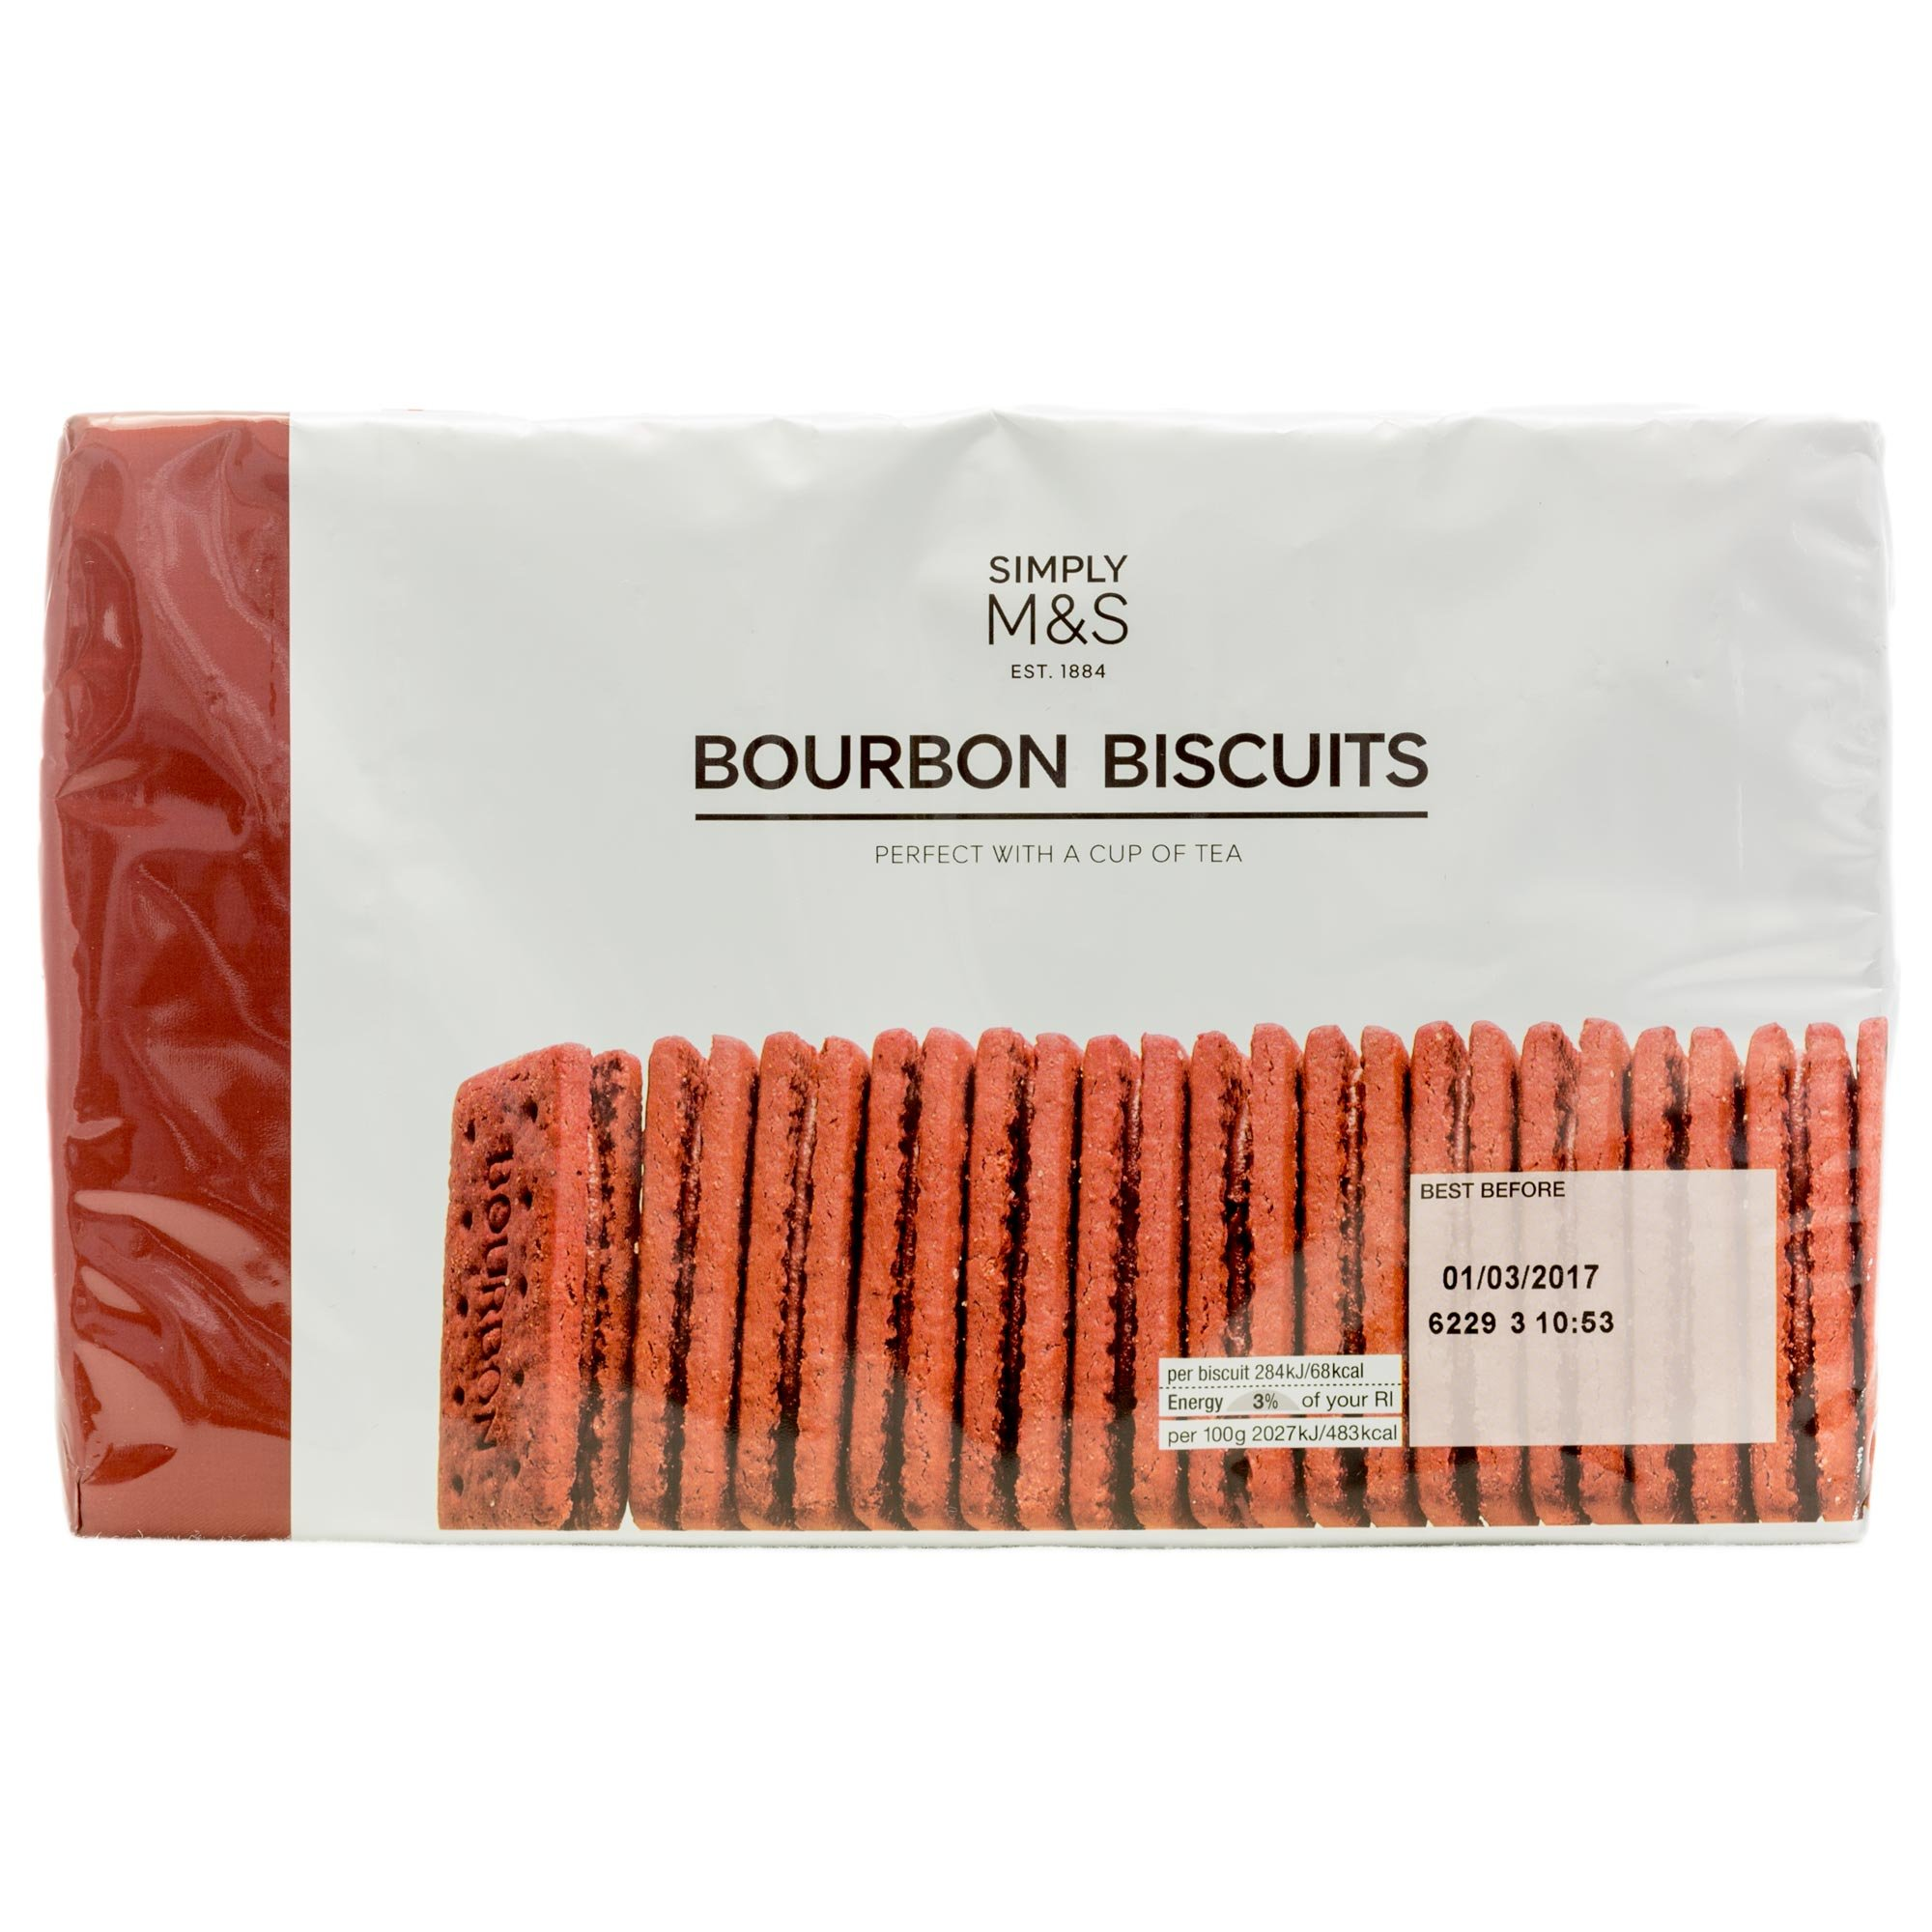 Amazon.com: Marks & Spencer Bourbon Biscuits - Two Packs - 400g x2